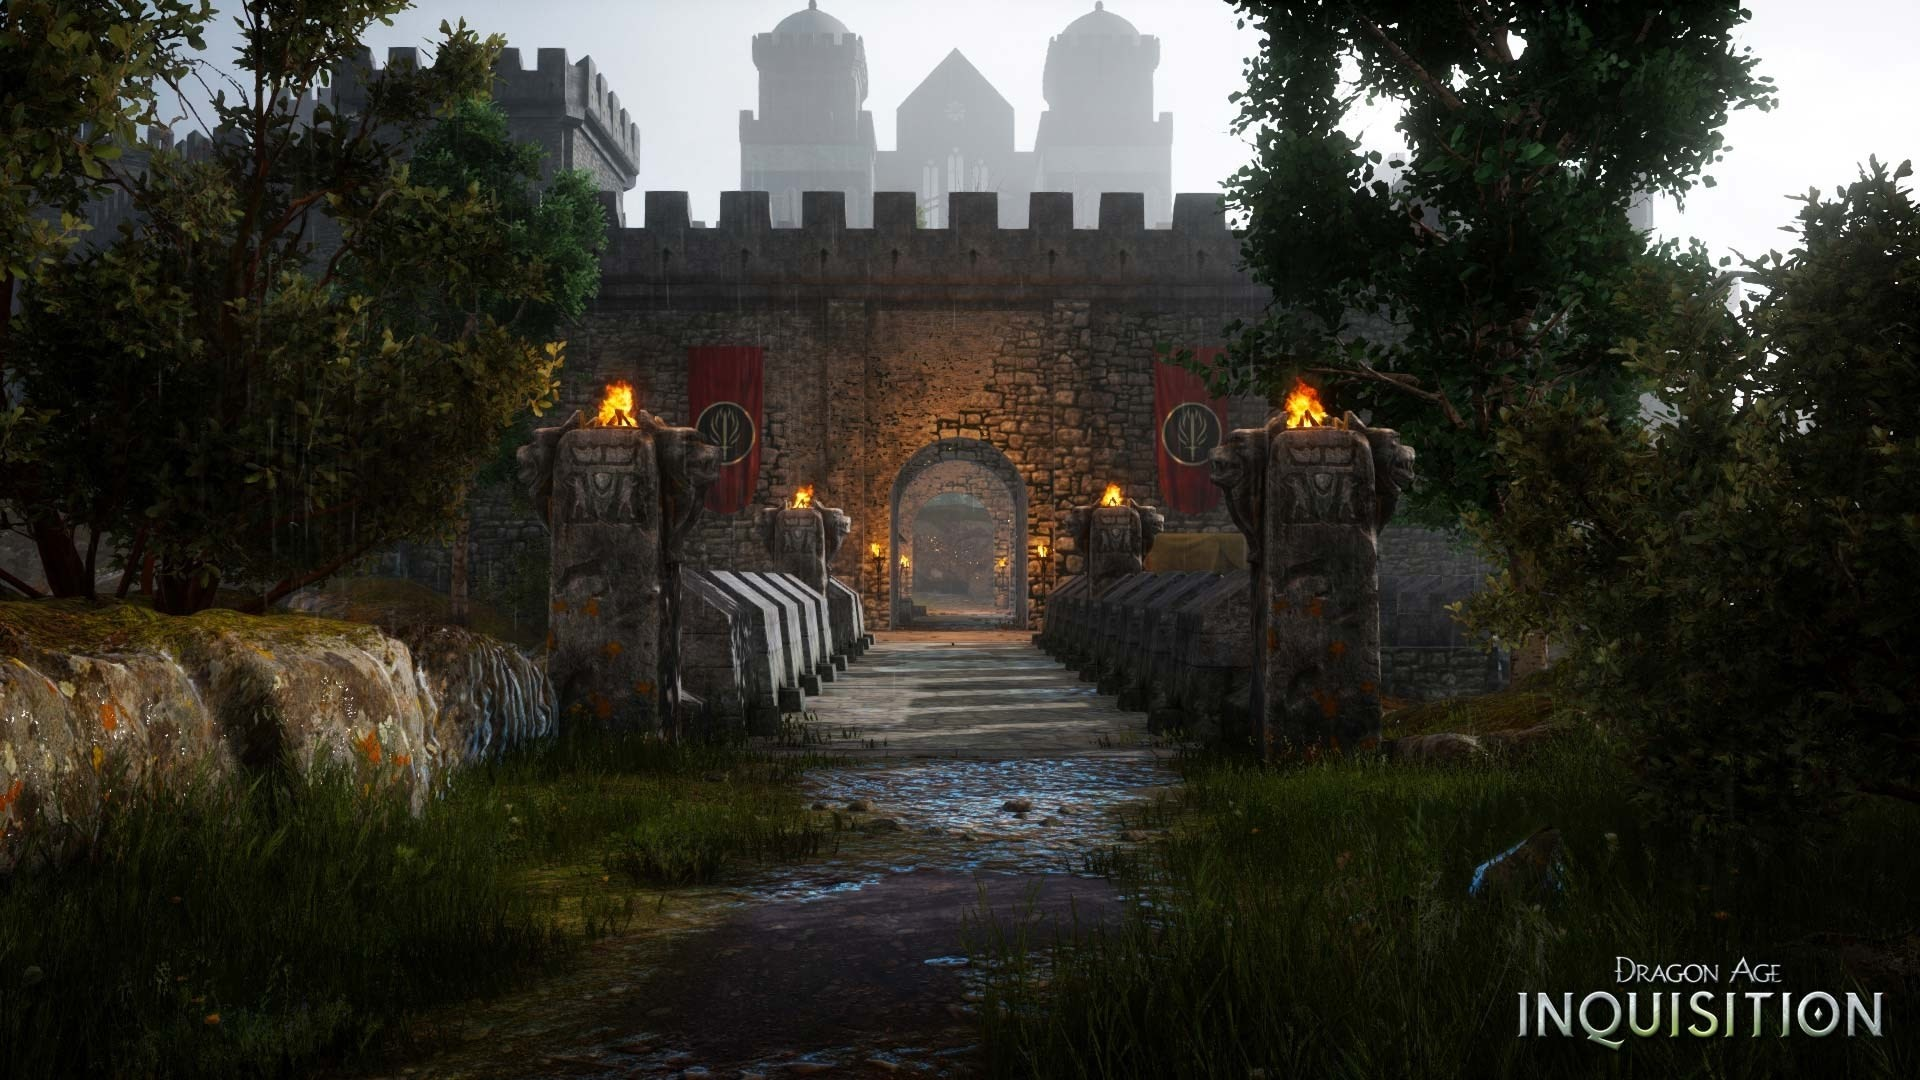 dragon age inquisition wallpaper pack 1080p hd, (392 kB)